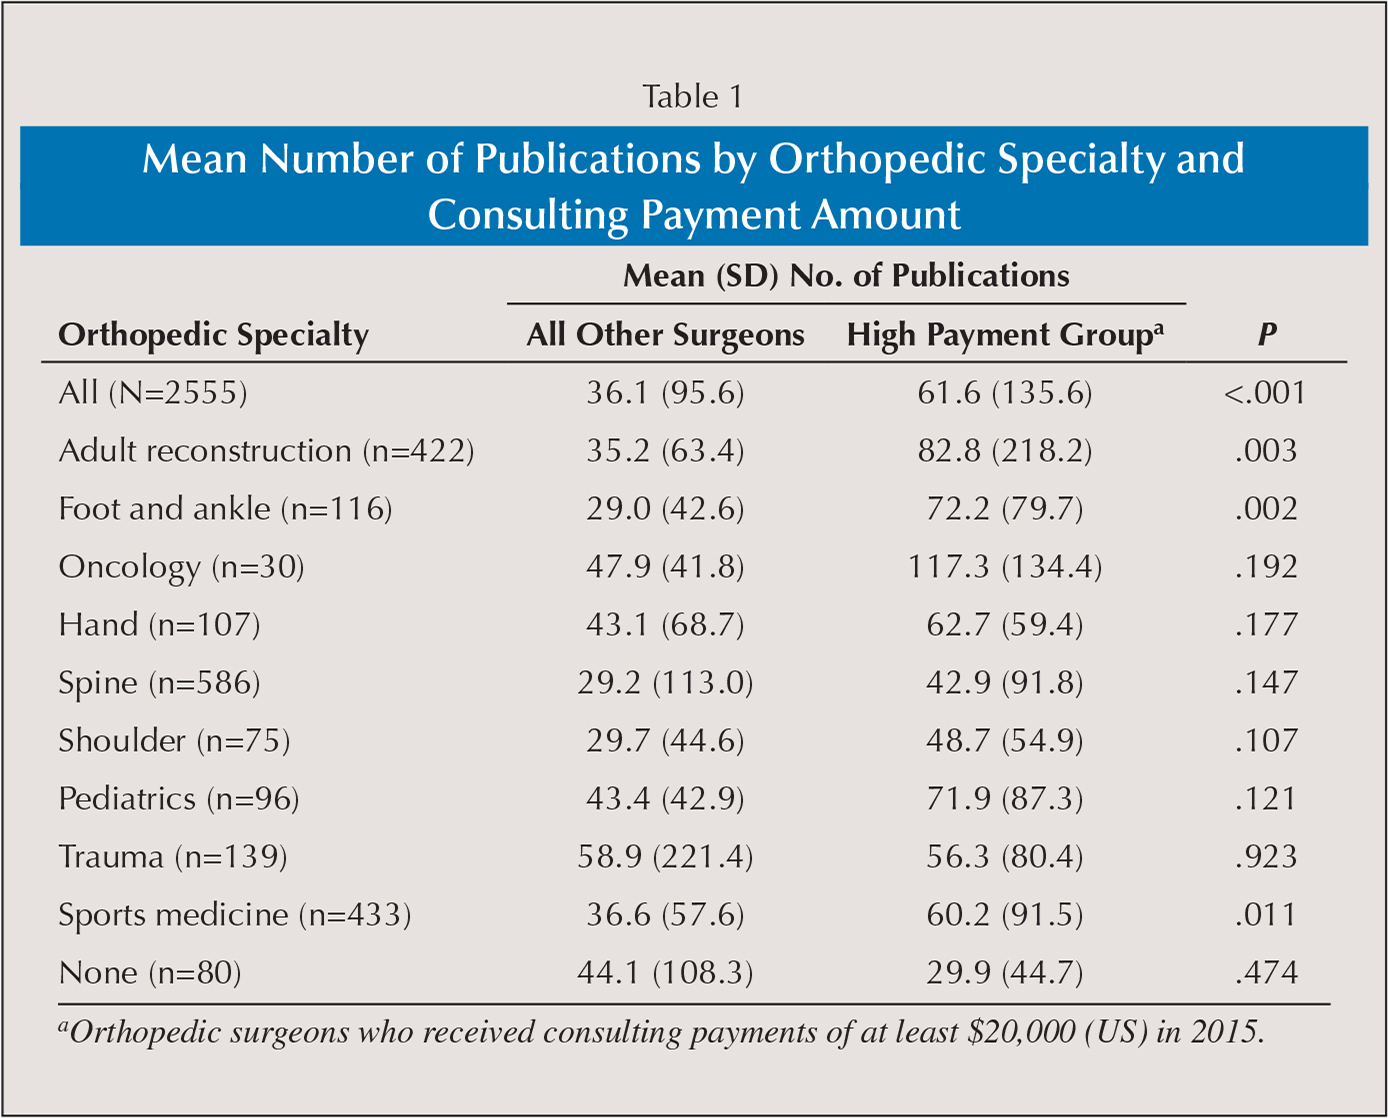 Mean Number of Publications by Orthopedic Specialty and Consulting Payment Amount